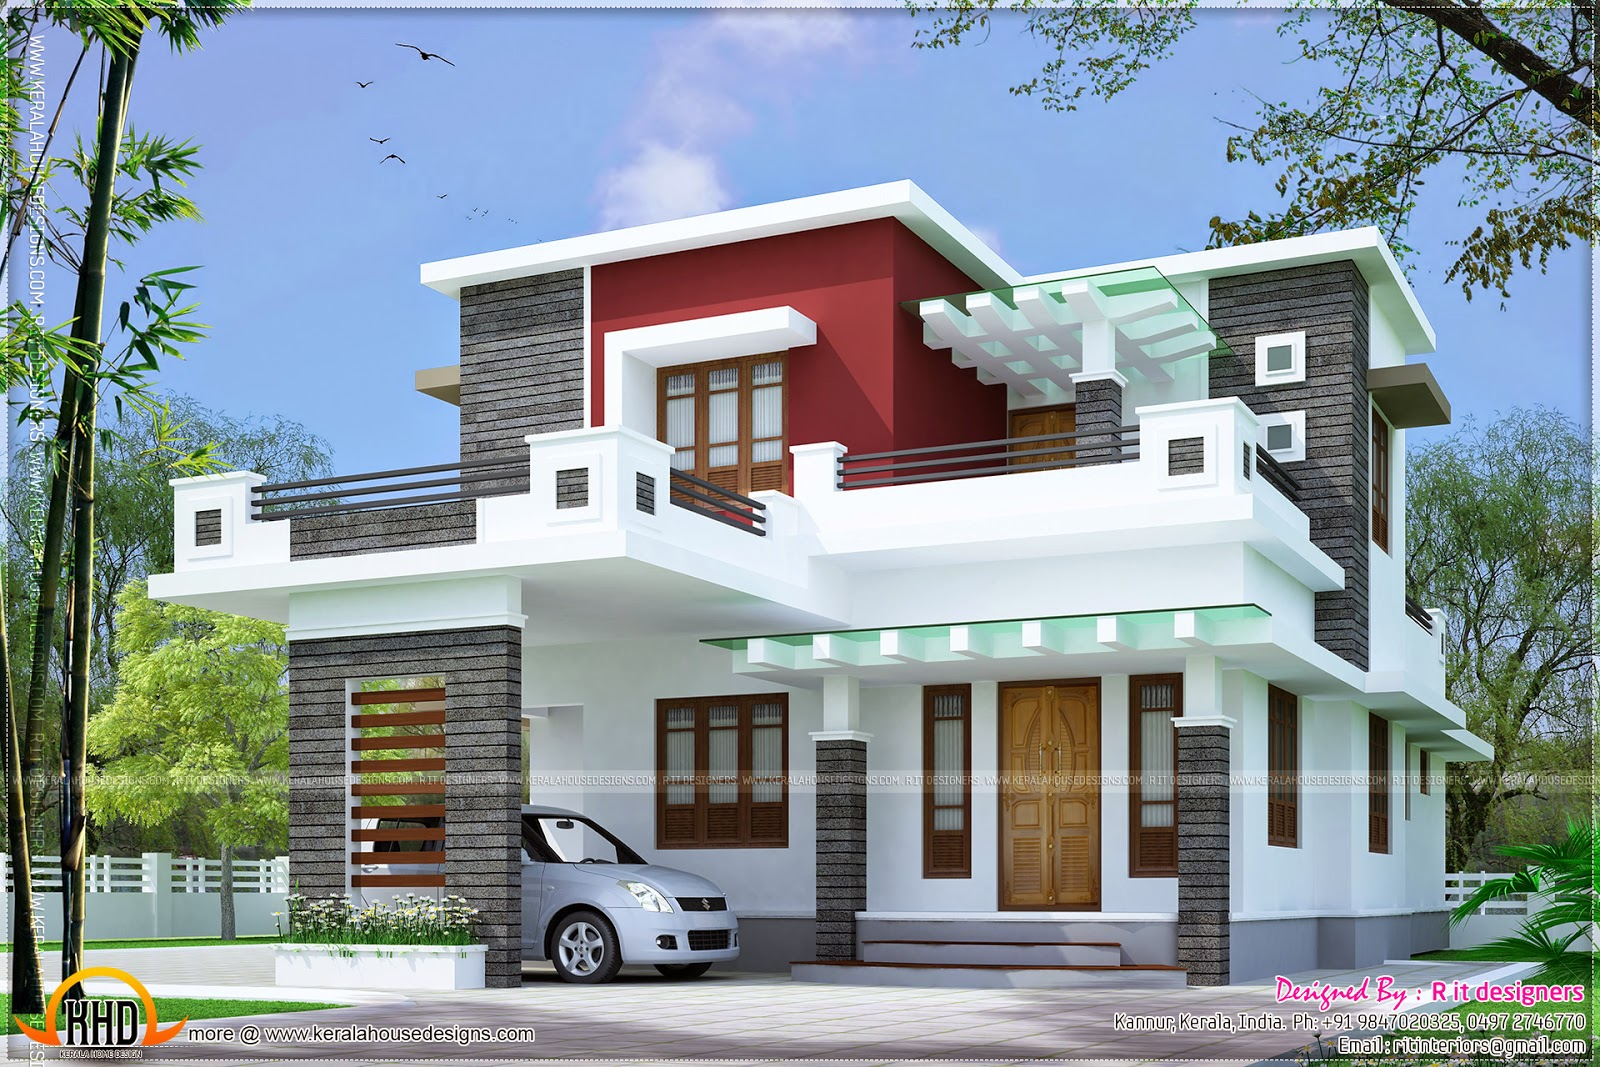 1959 square feet contemporary house exterior kerala home for Normal house front design